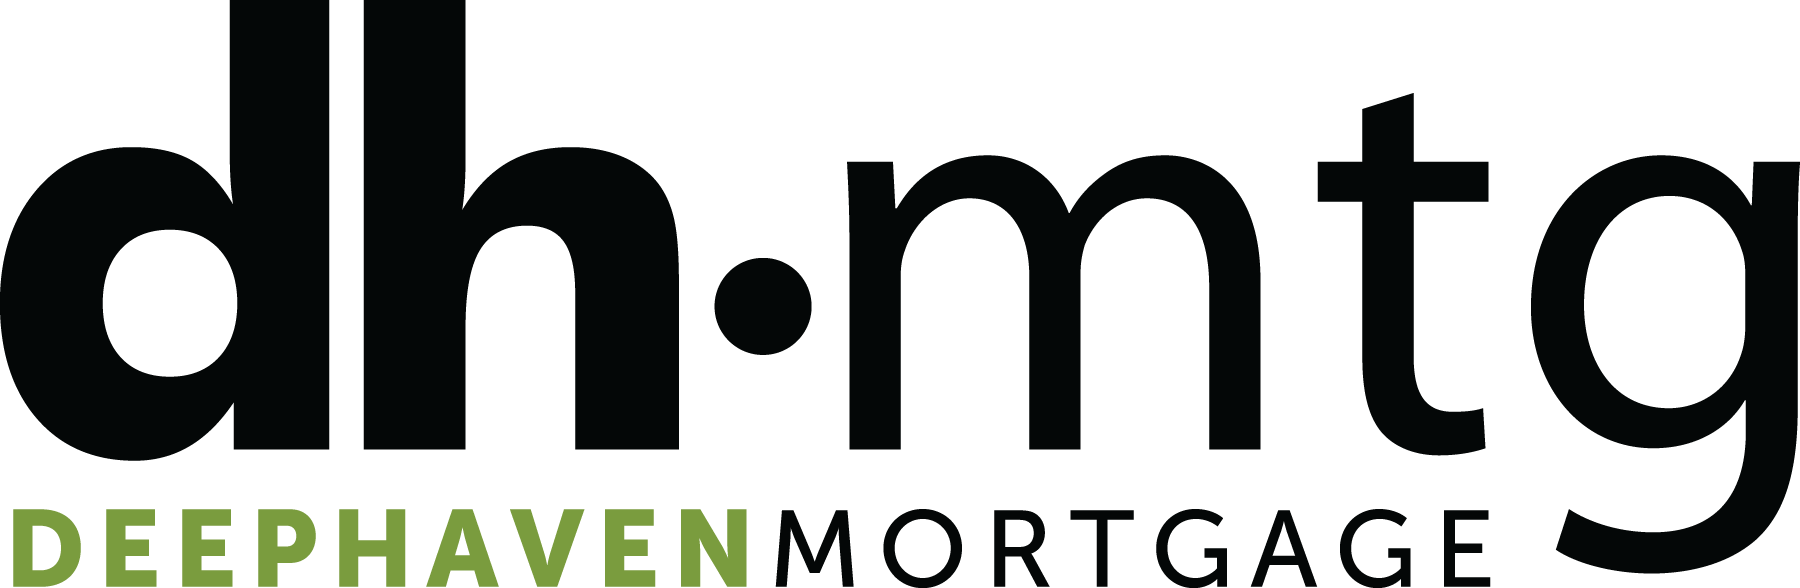 Exhibitors - 27th Annual Rocky Mountain Mortgage Lenders Expo